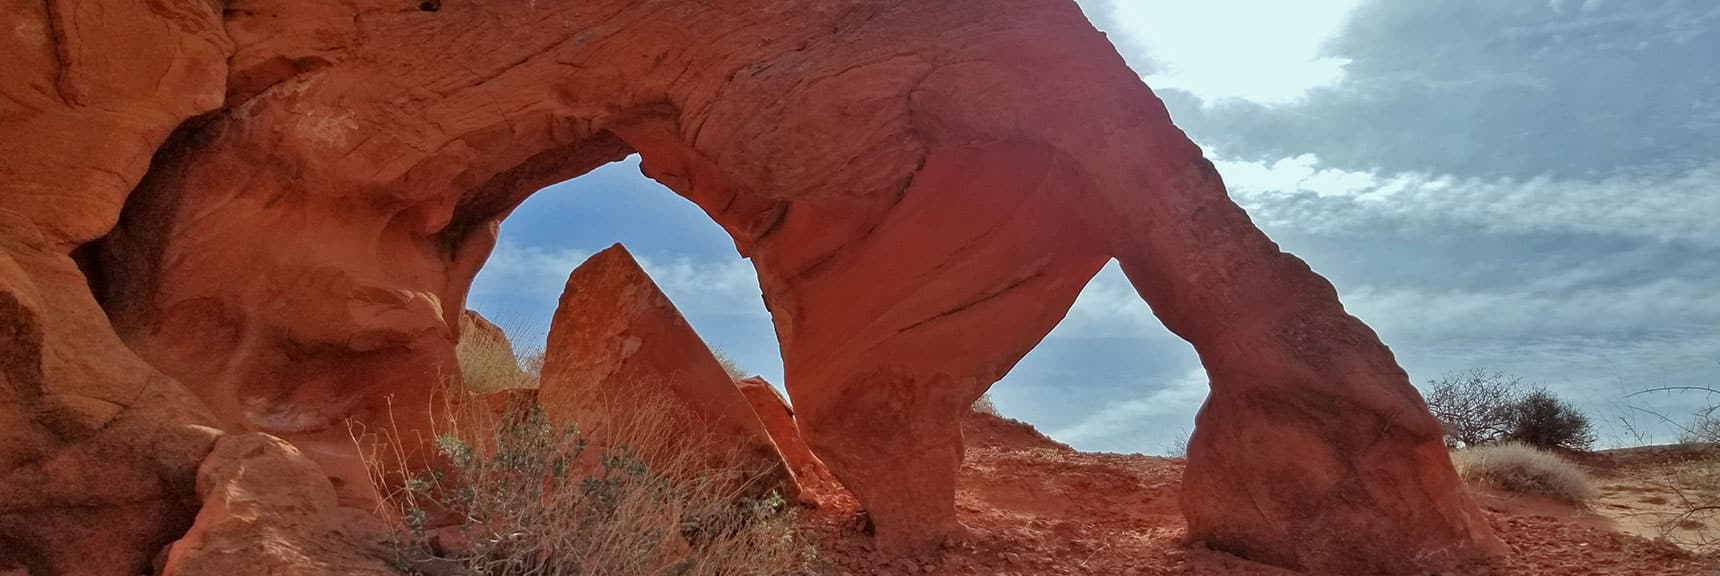 Old Arrowhead Trail in Valley of Fire State Park, Nevada